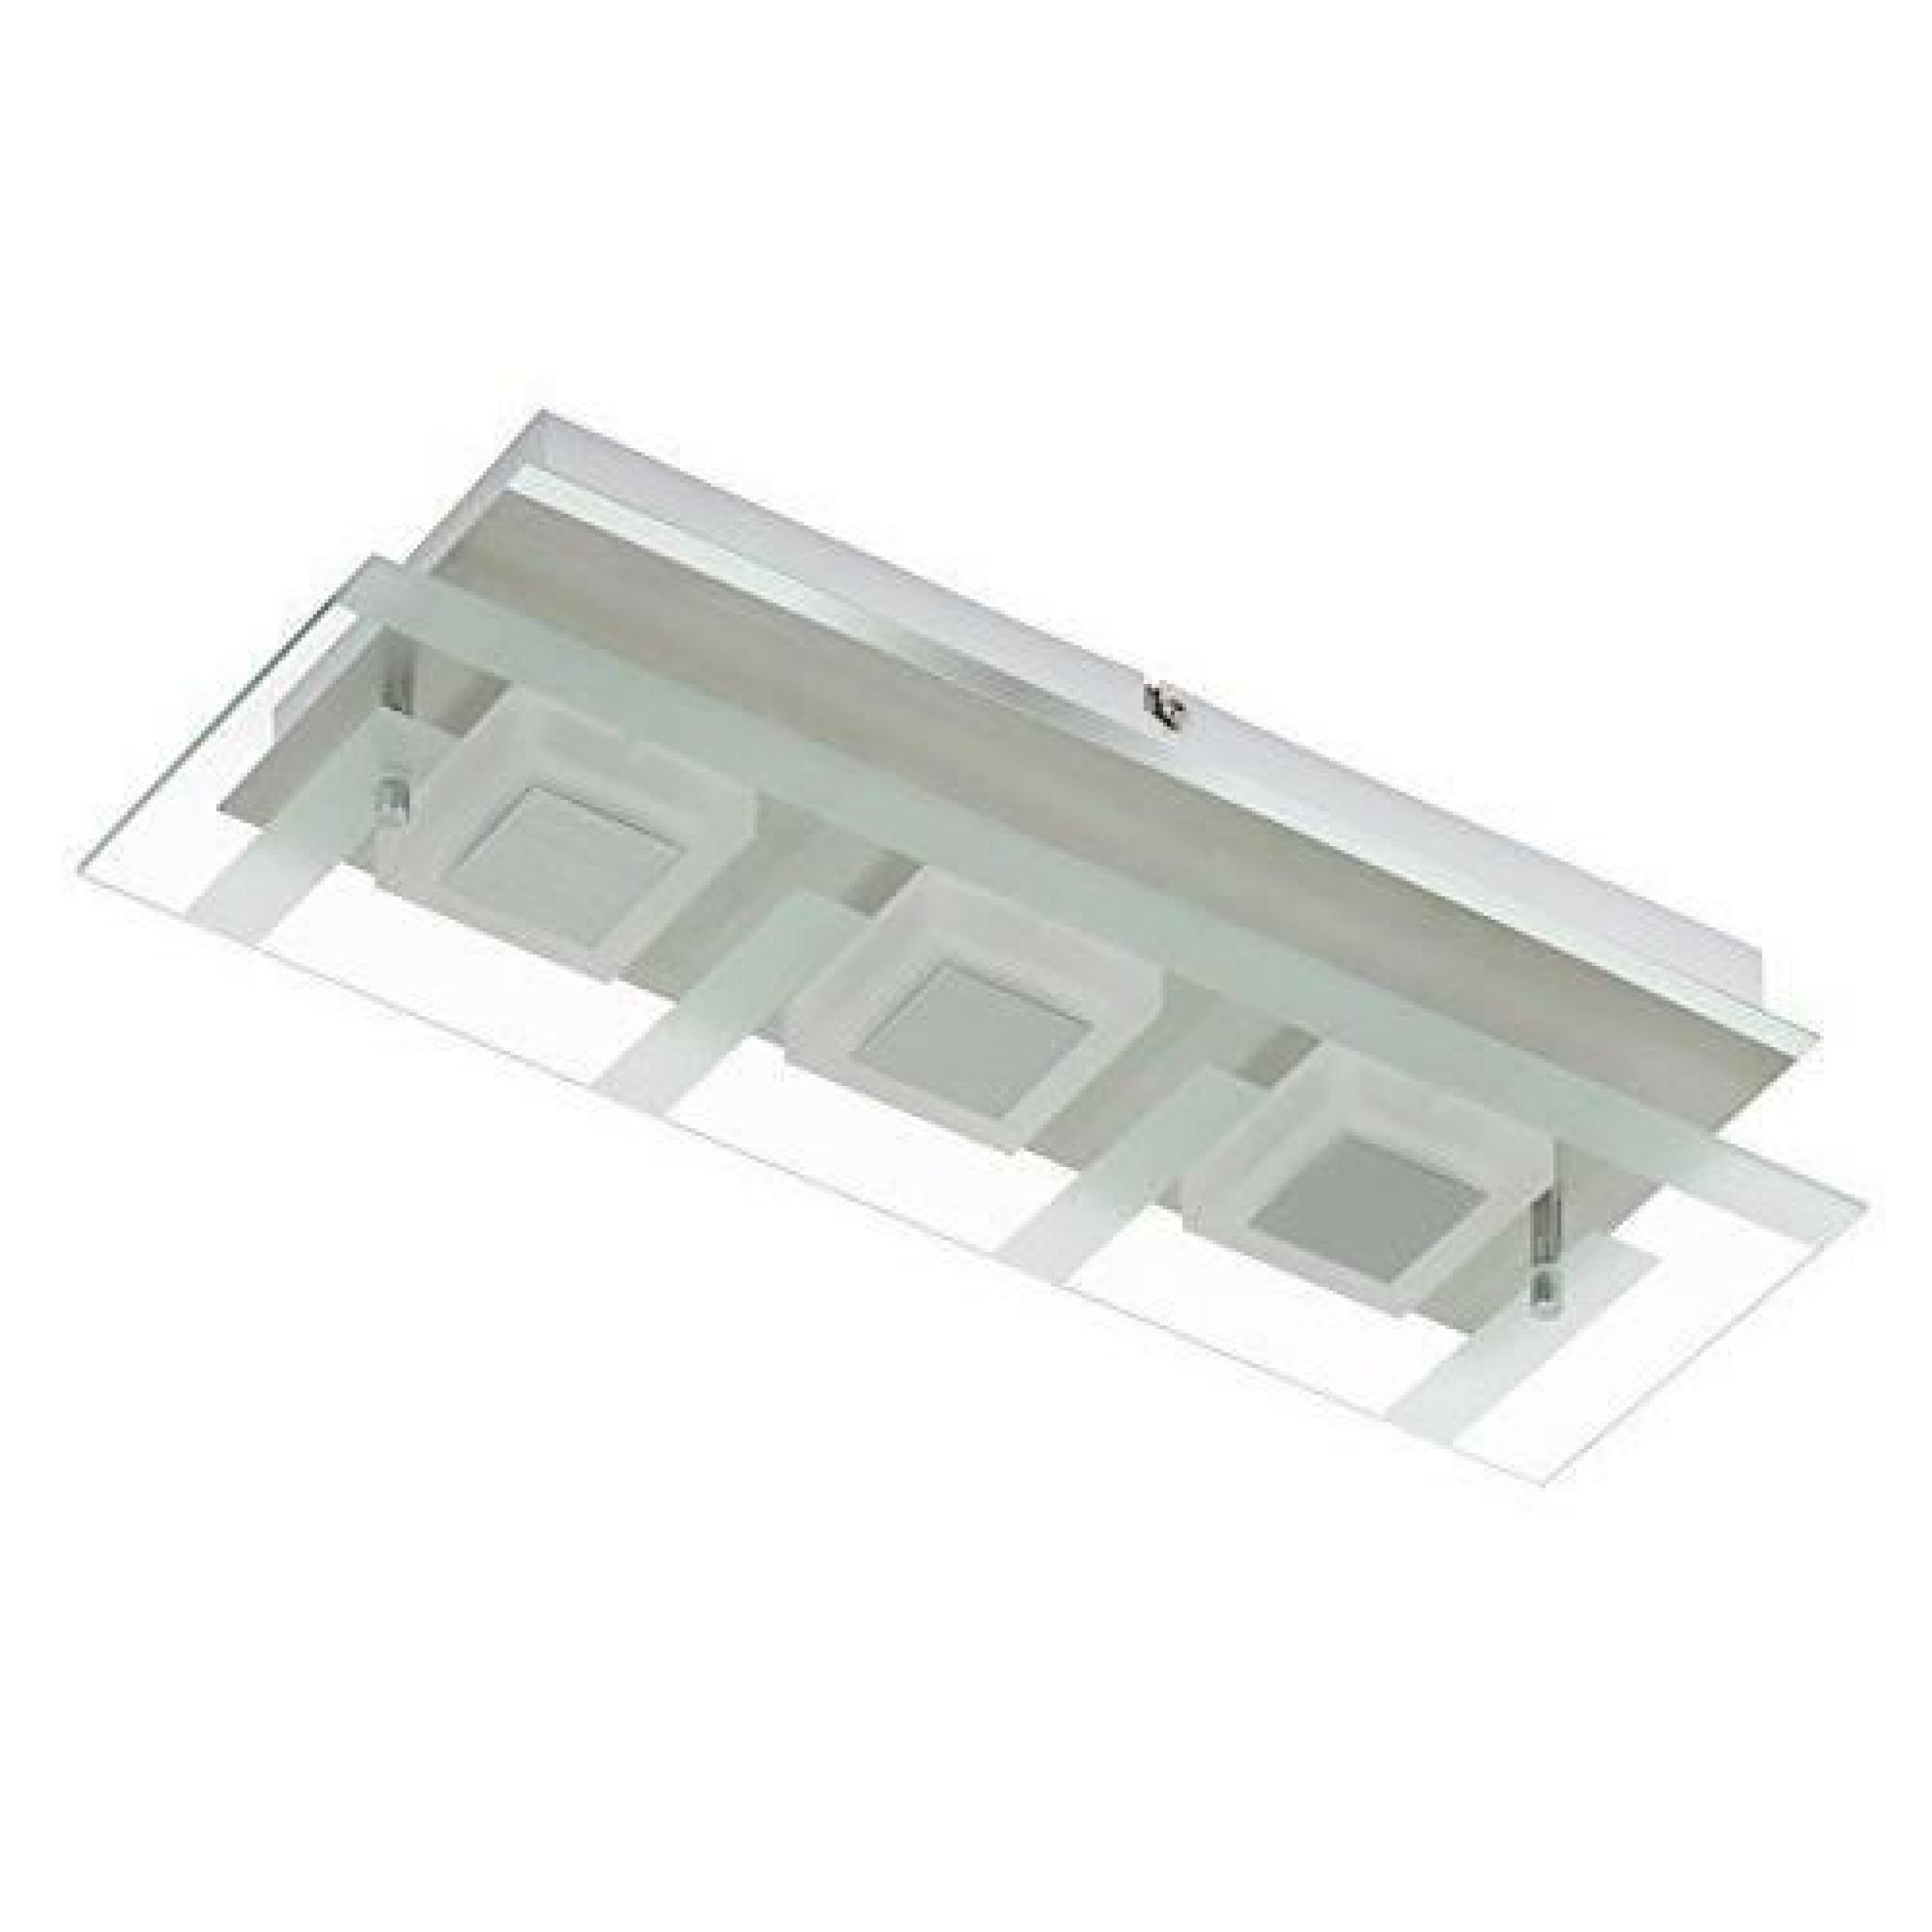 Briloner leuchten applique murale 3 lED 5 w 400 lm nickel mat 3569-032